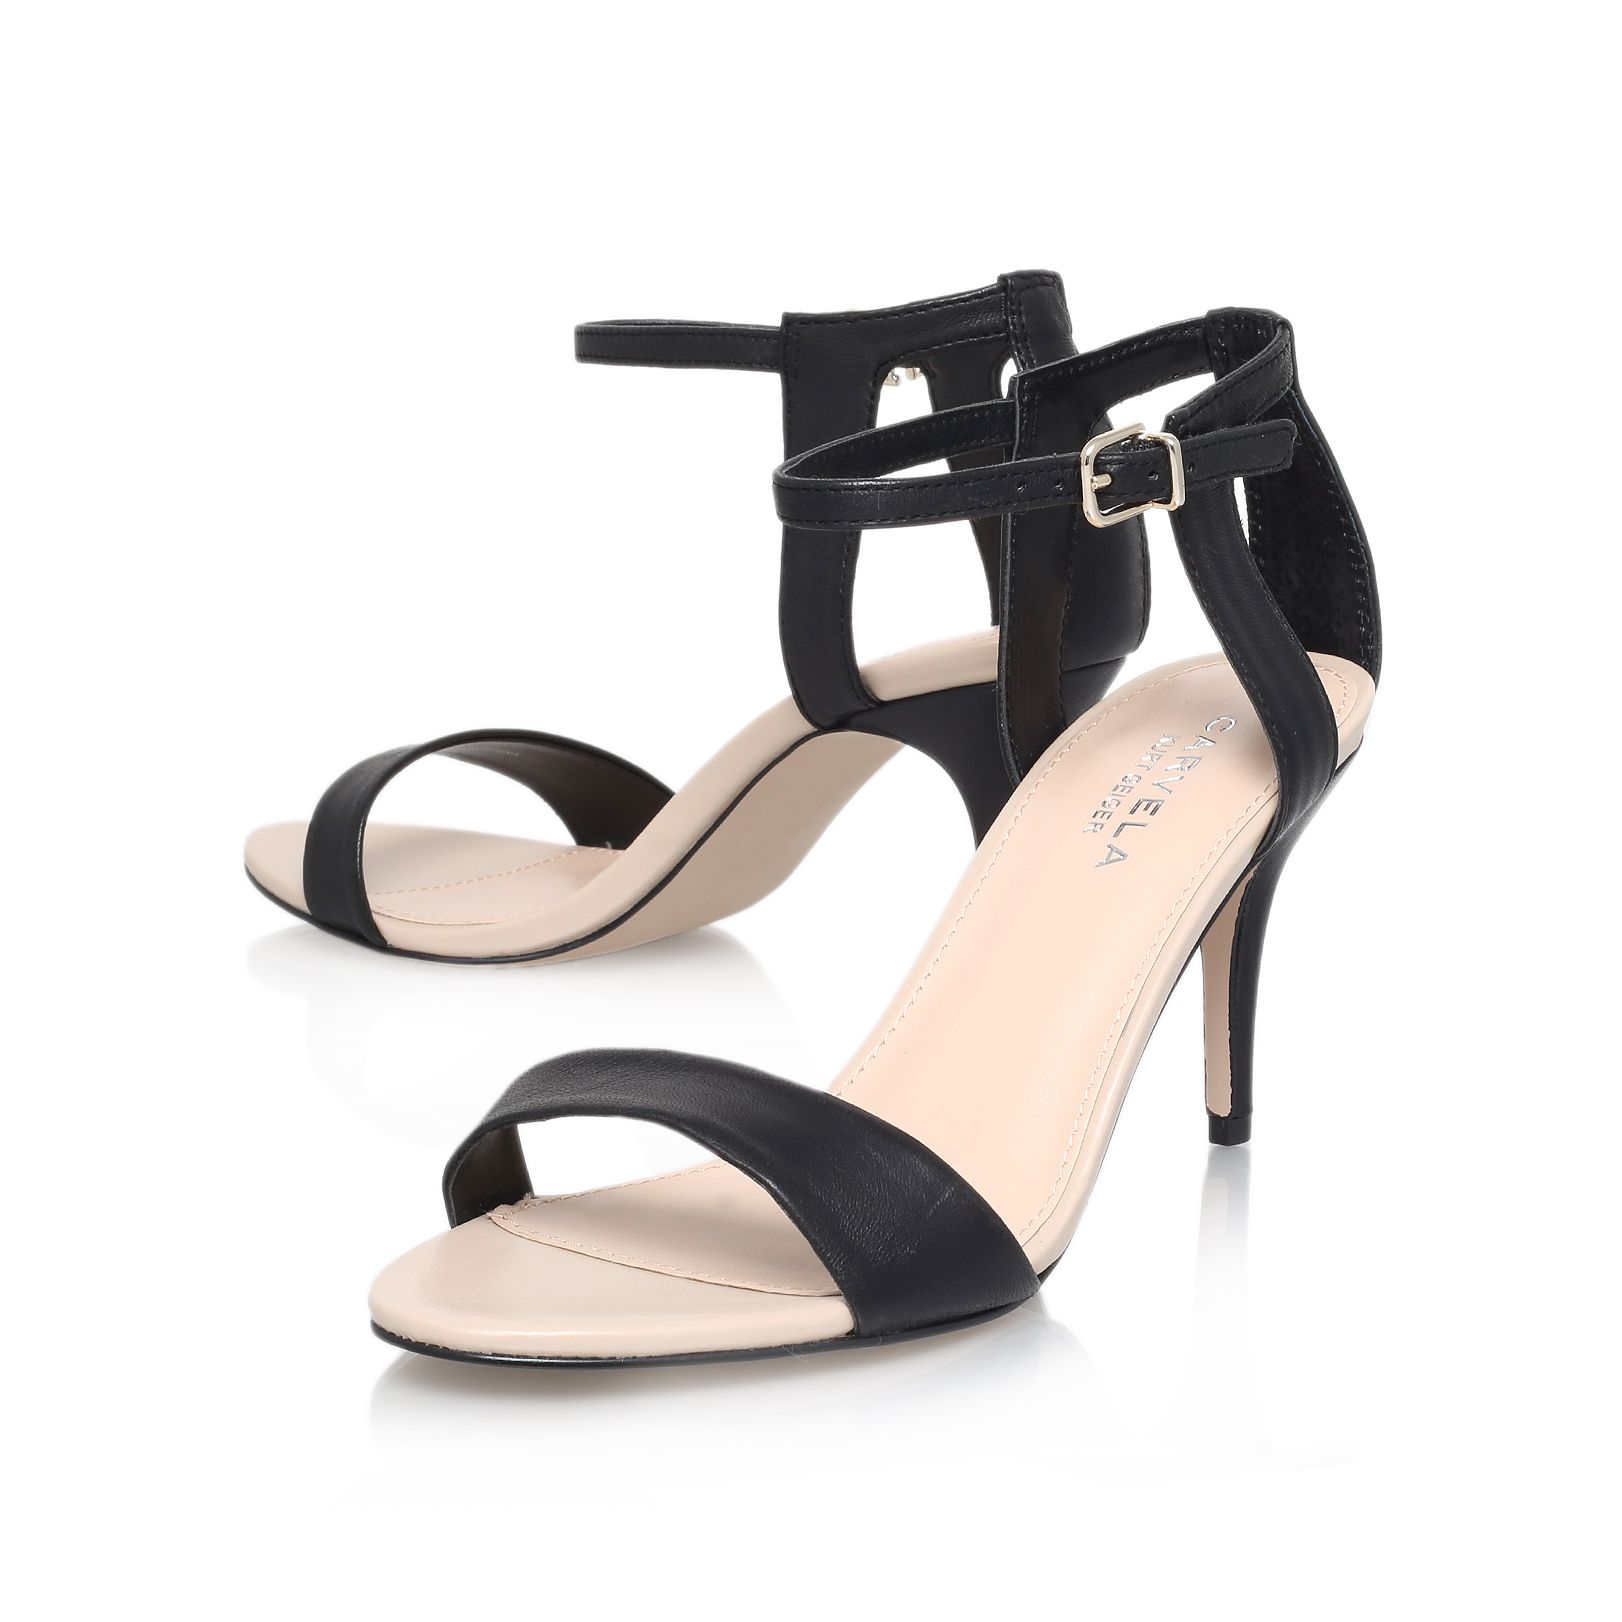 64d4e7d5d5f0 KOLLUDE Carvela Kollude Black Leather Mid Heel Sandals by CARVELA KURT  GEIGER